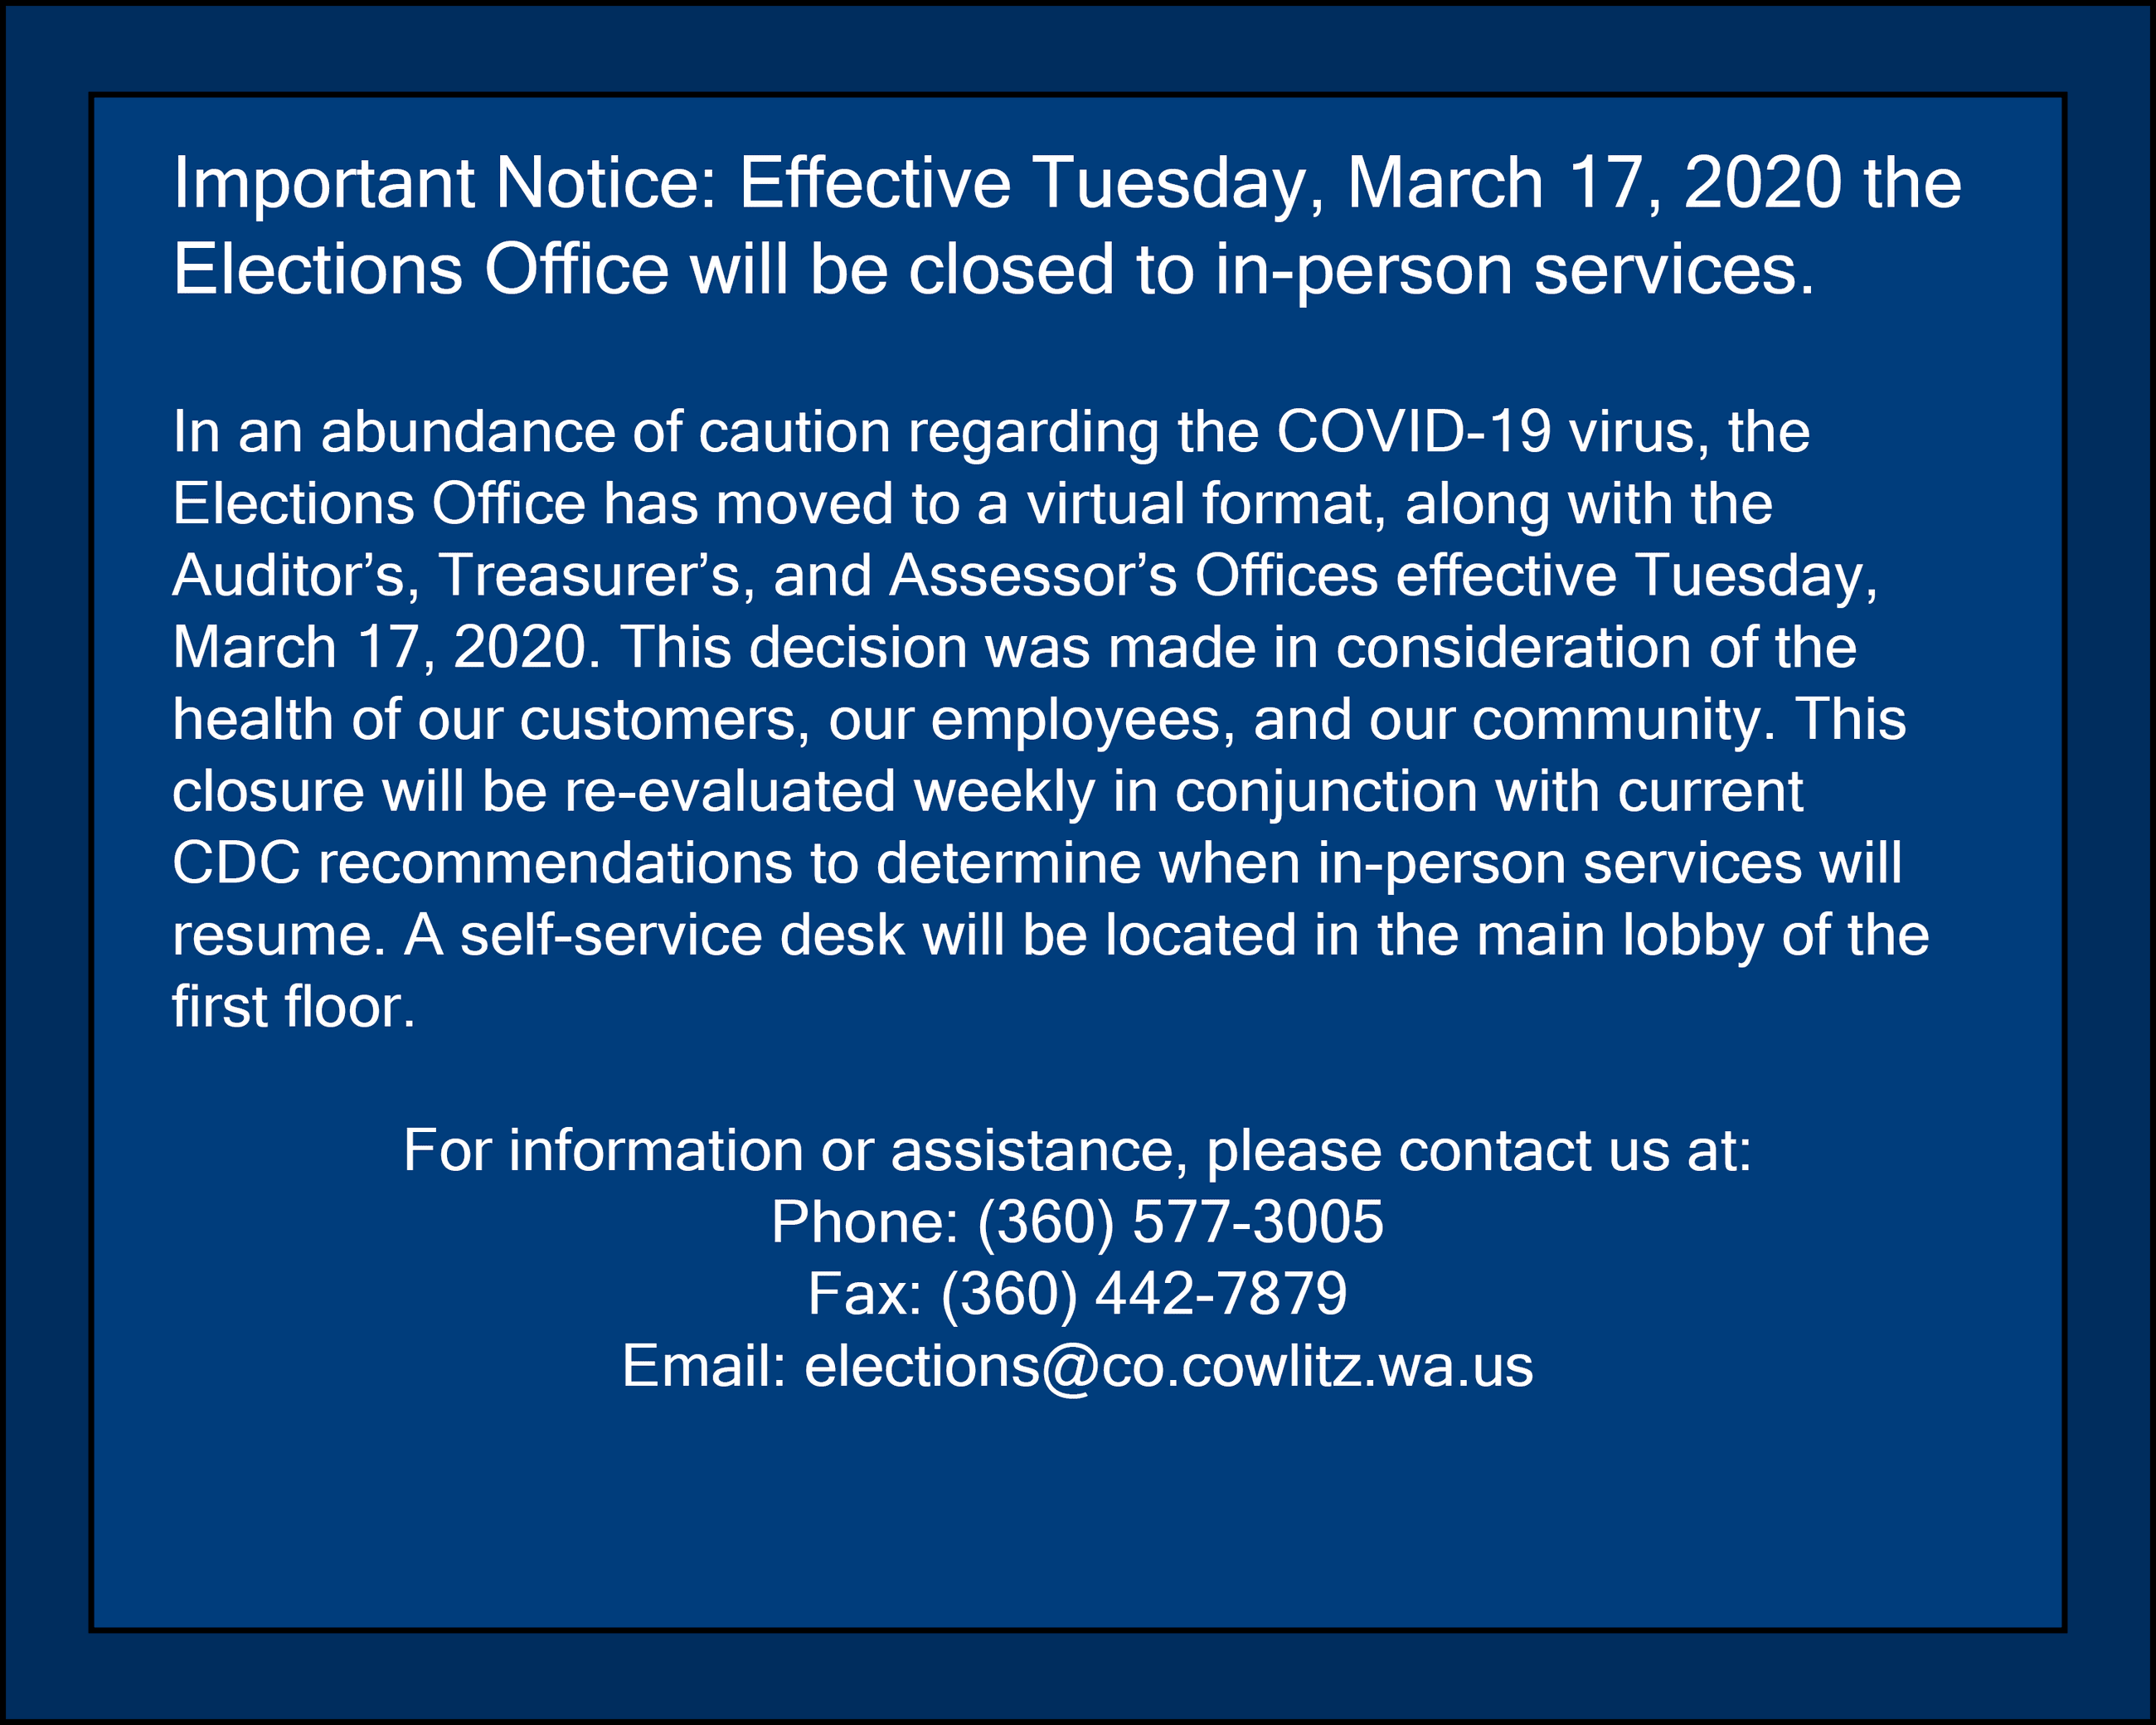 Notice on blue background stating in-person elections service is suspended